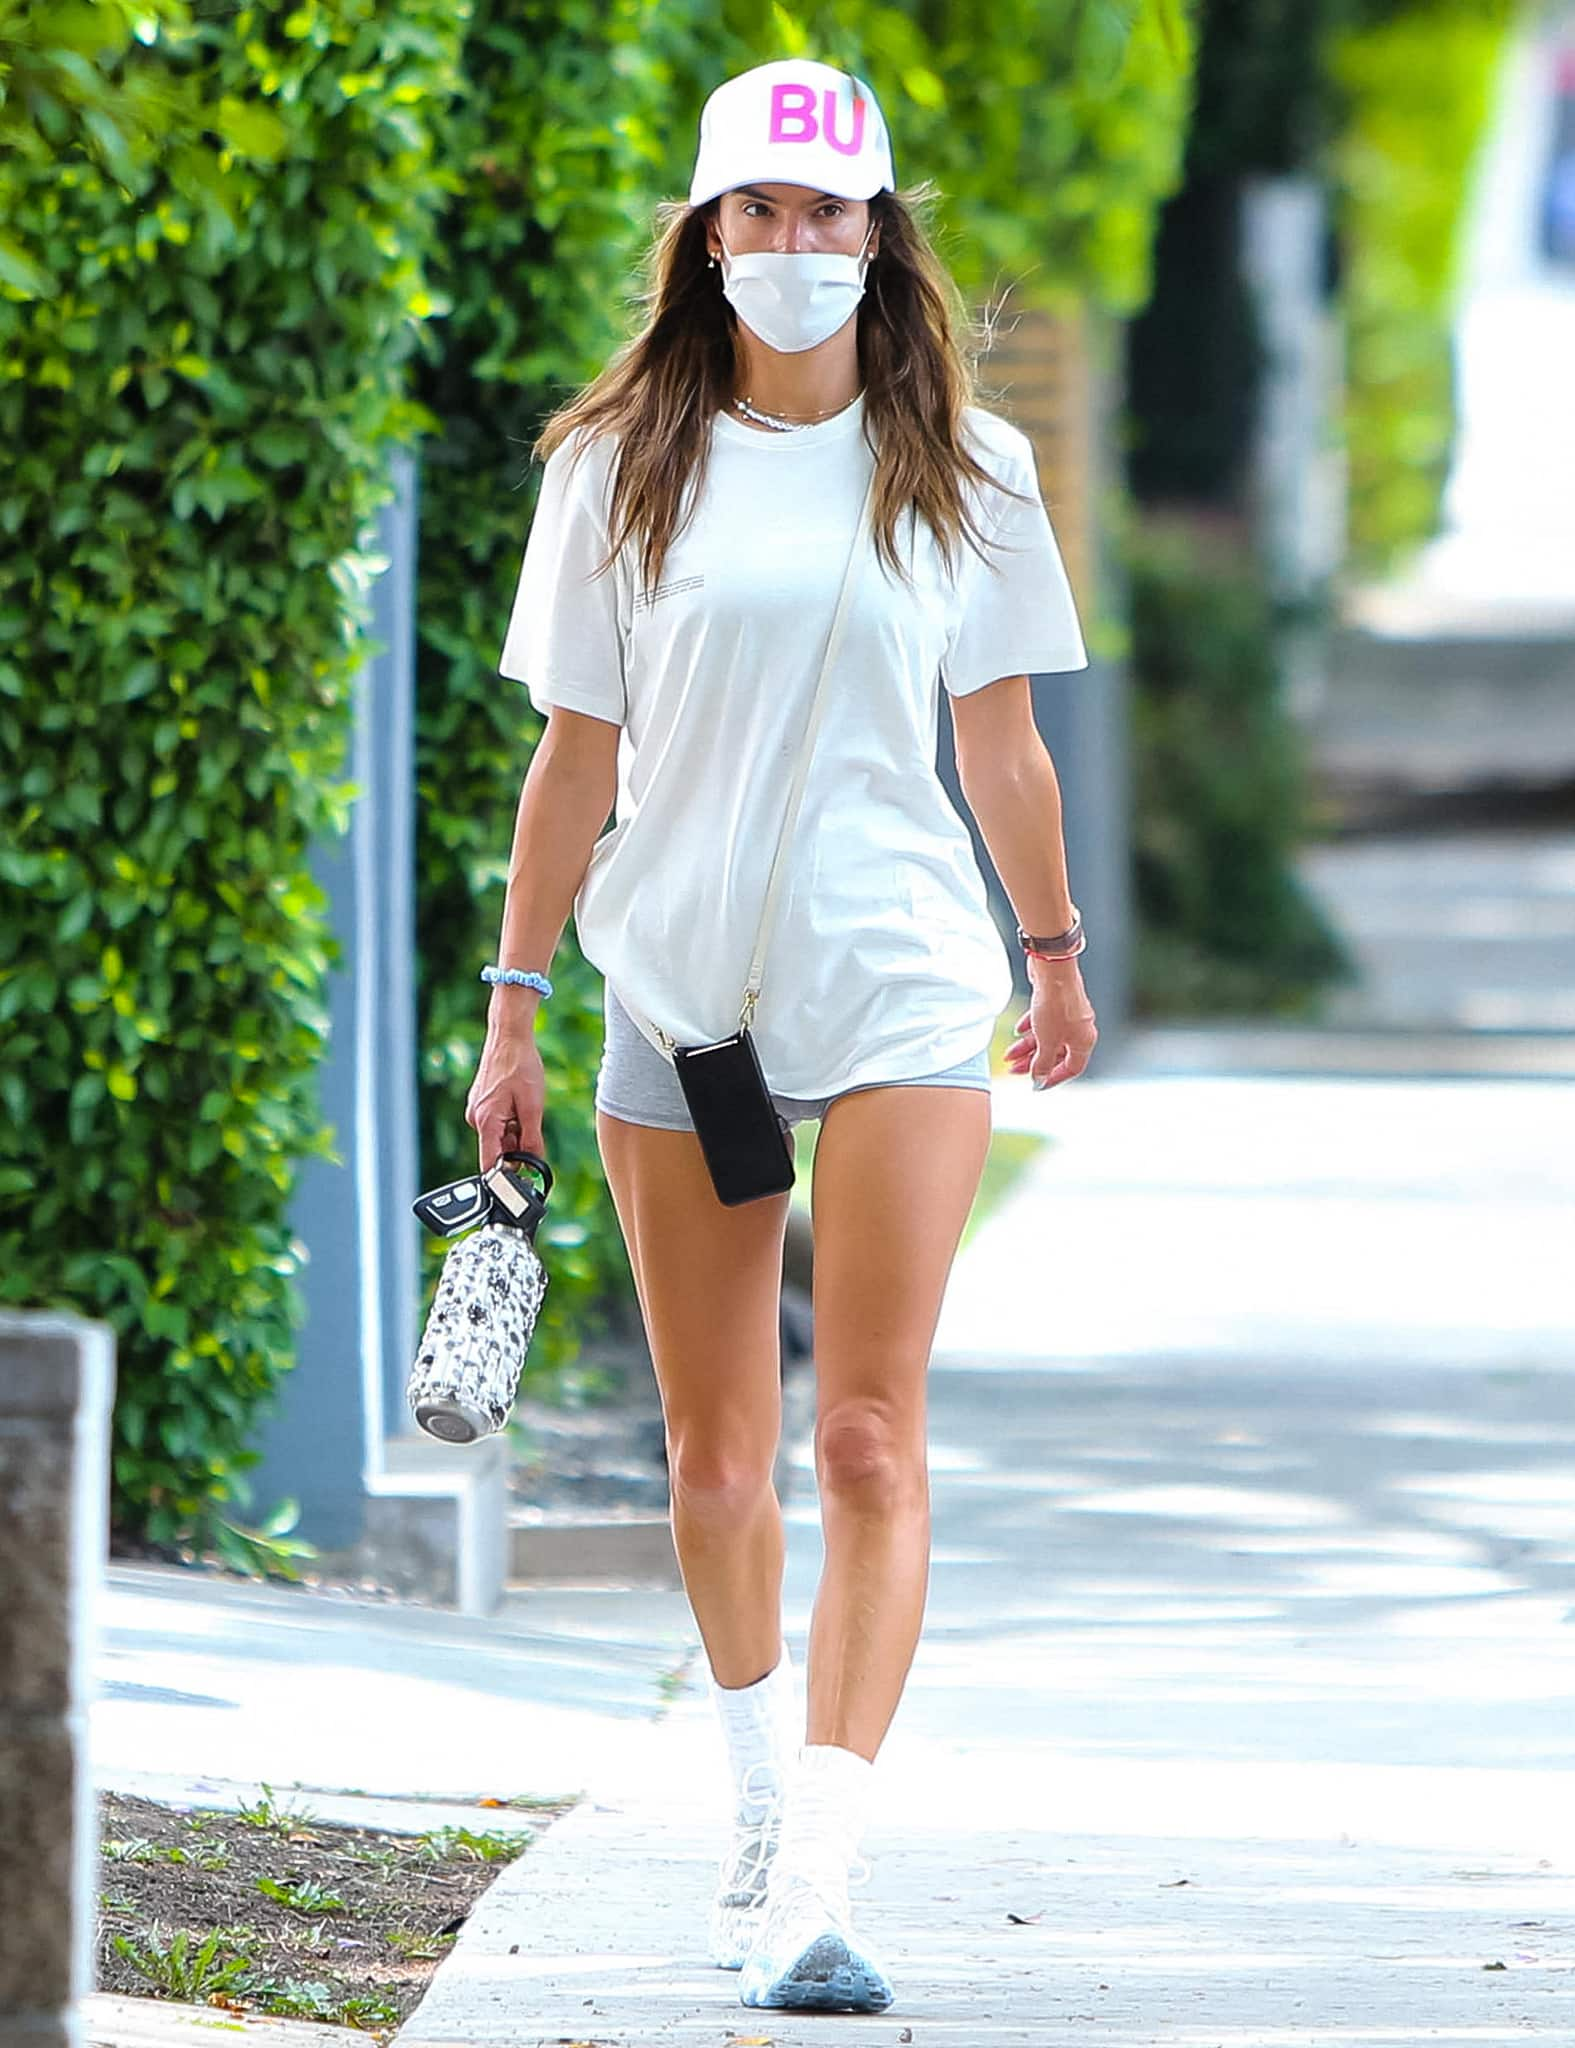 Alessandra parades her mile-long legs while out in Los Angeles on August 11, 2021